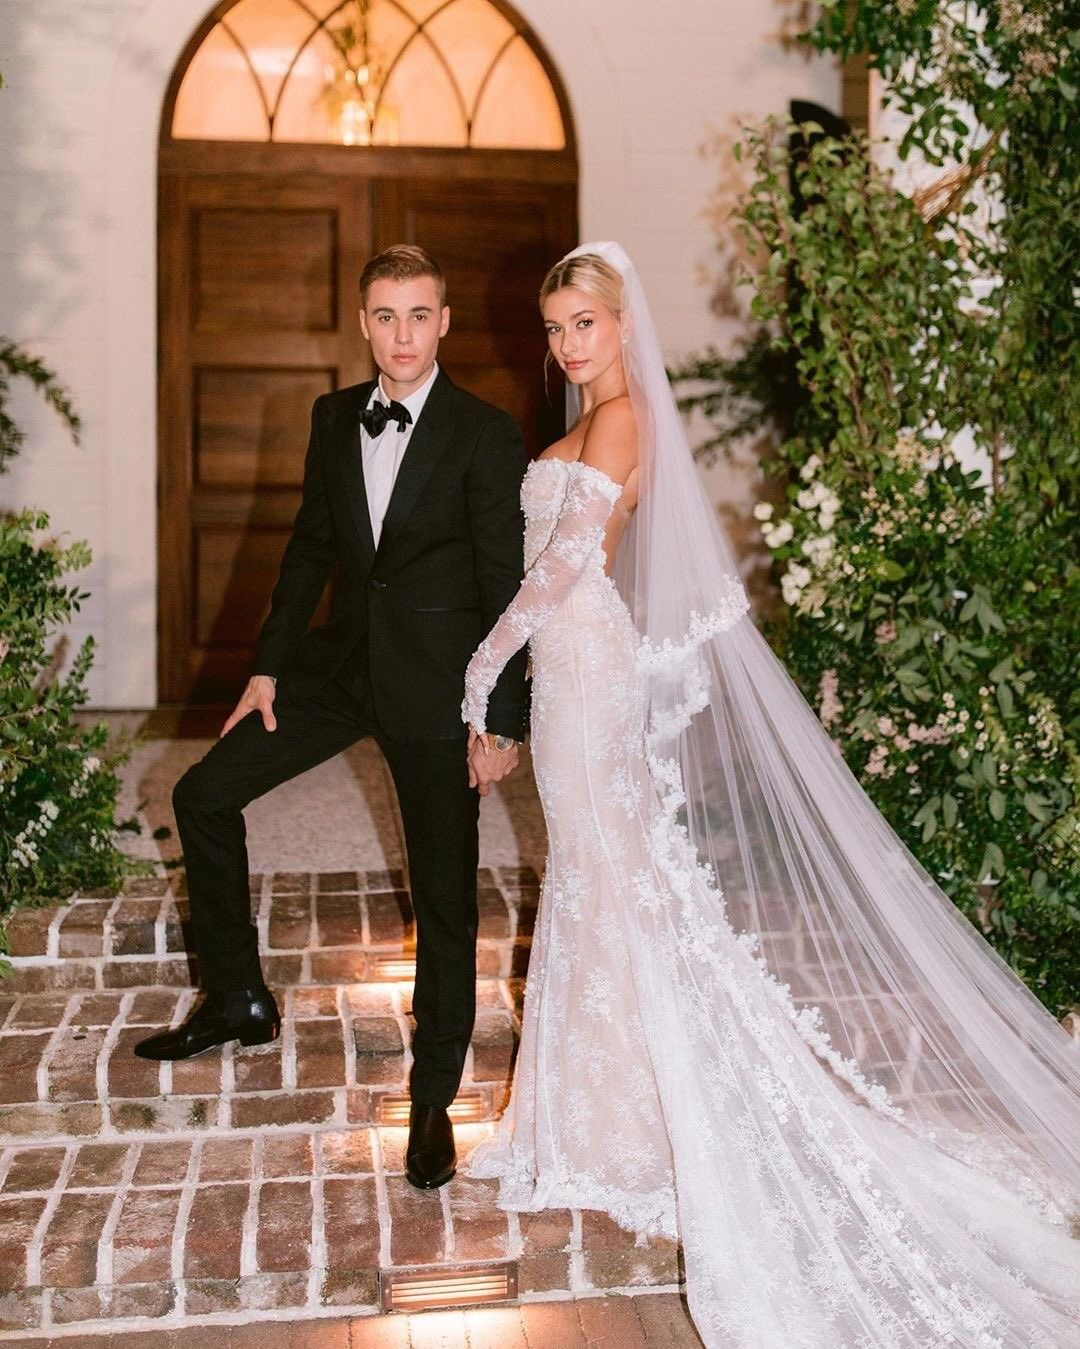 The Biebers Wedding Justin Bieber Hailey Bieber Wedding Dresses Hailey Bieber Wedding Celebrity Wedding Gowns